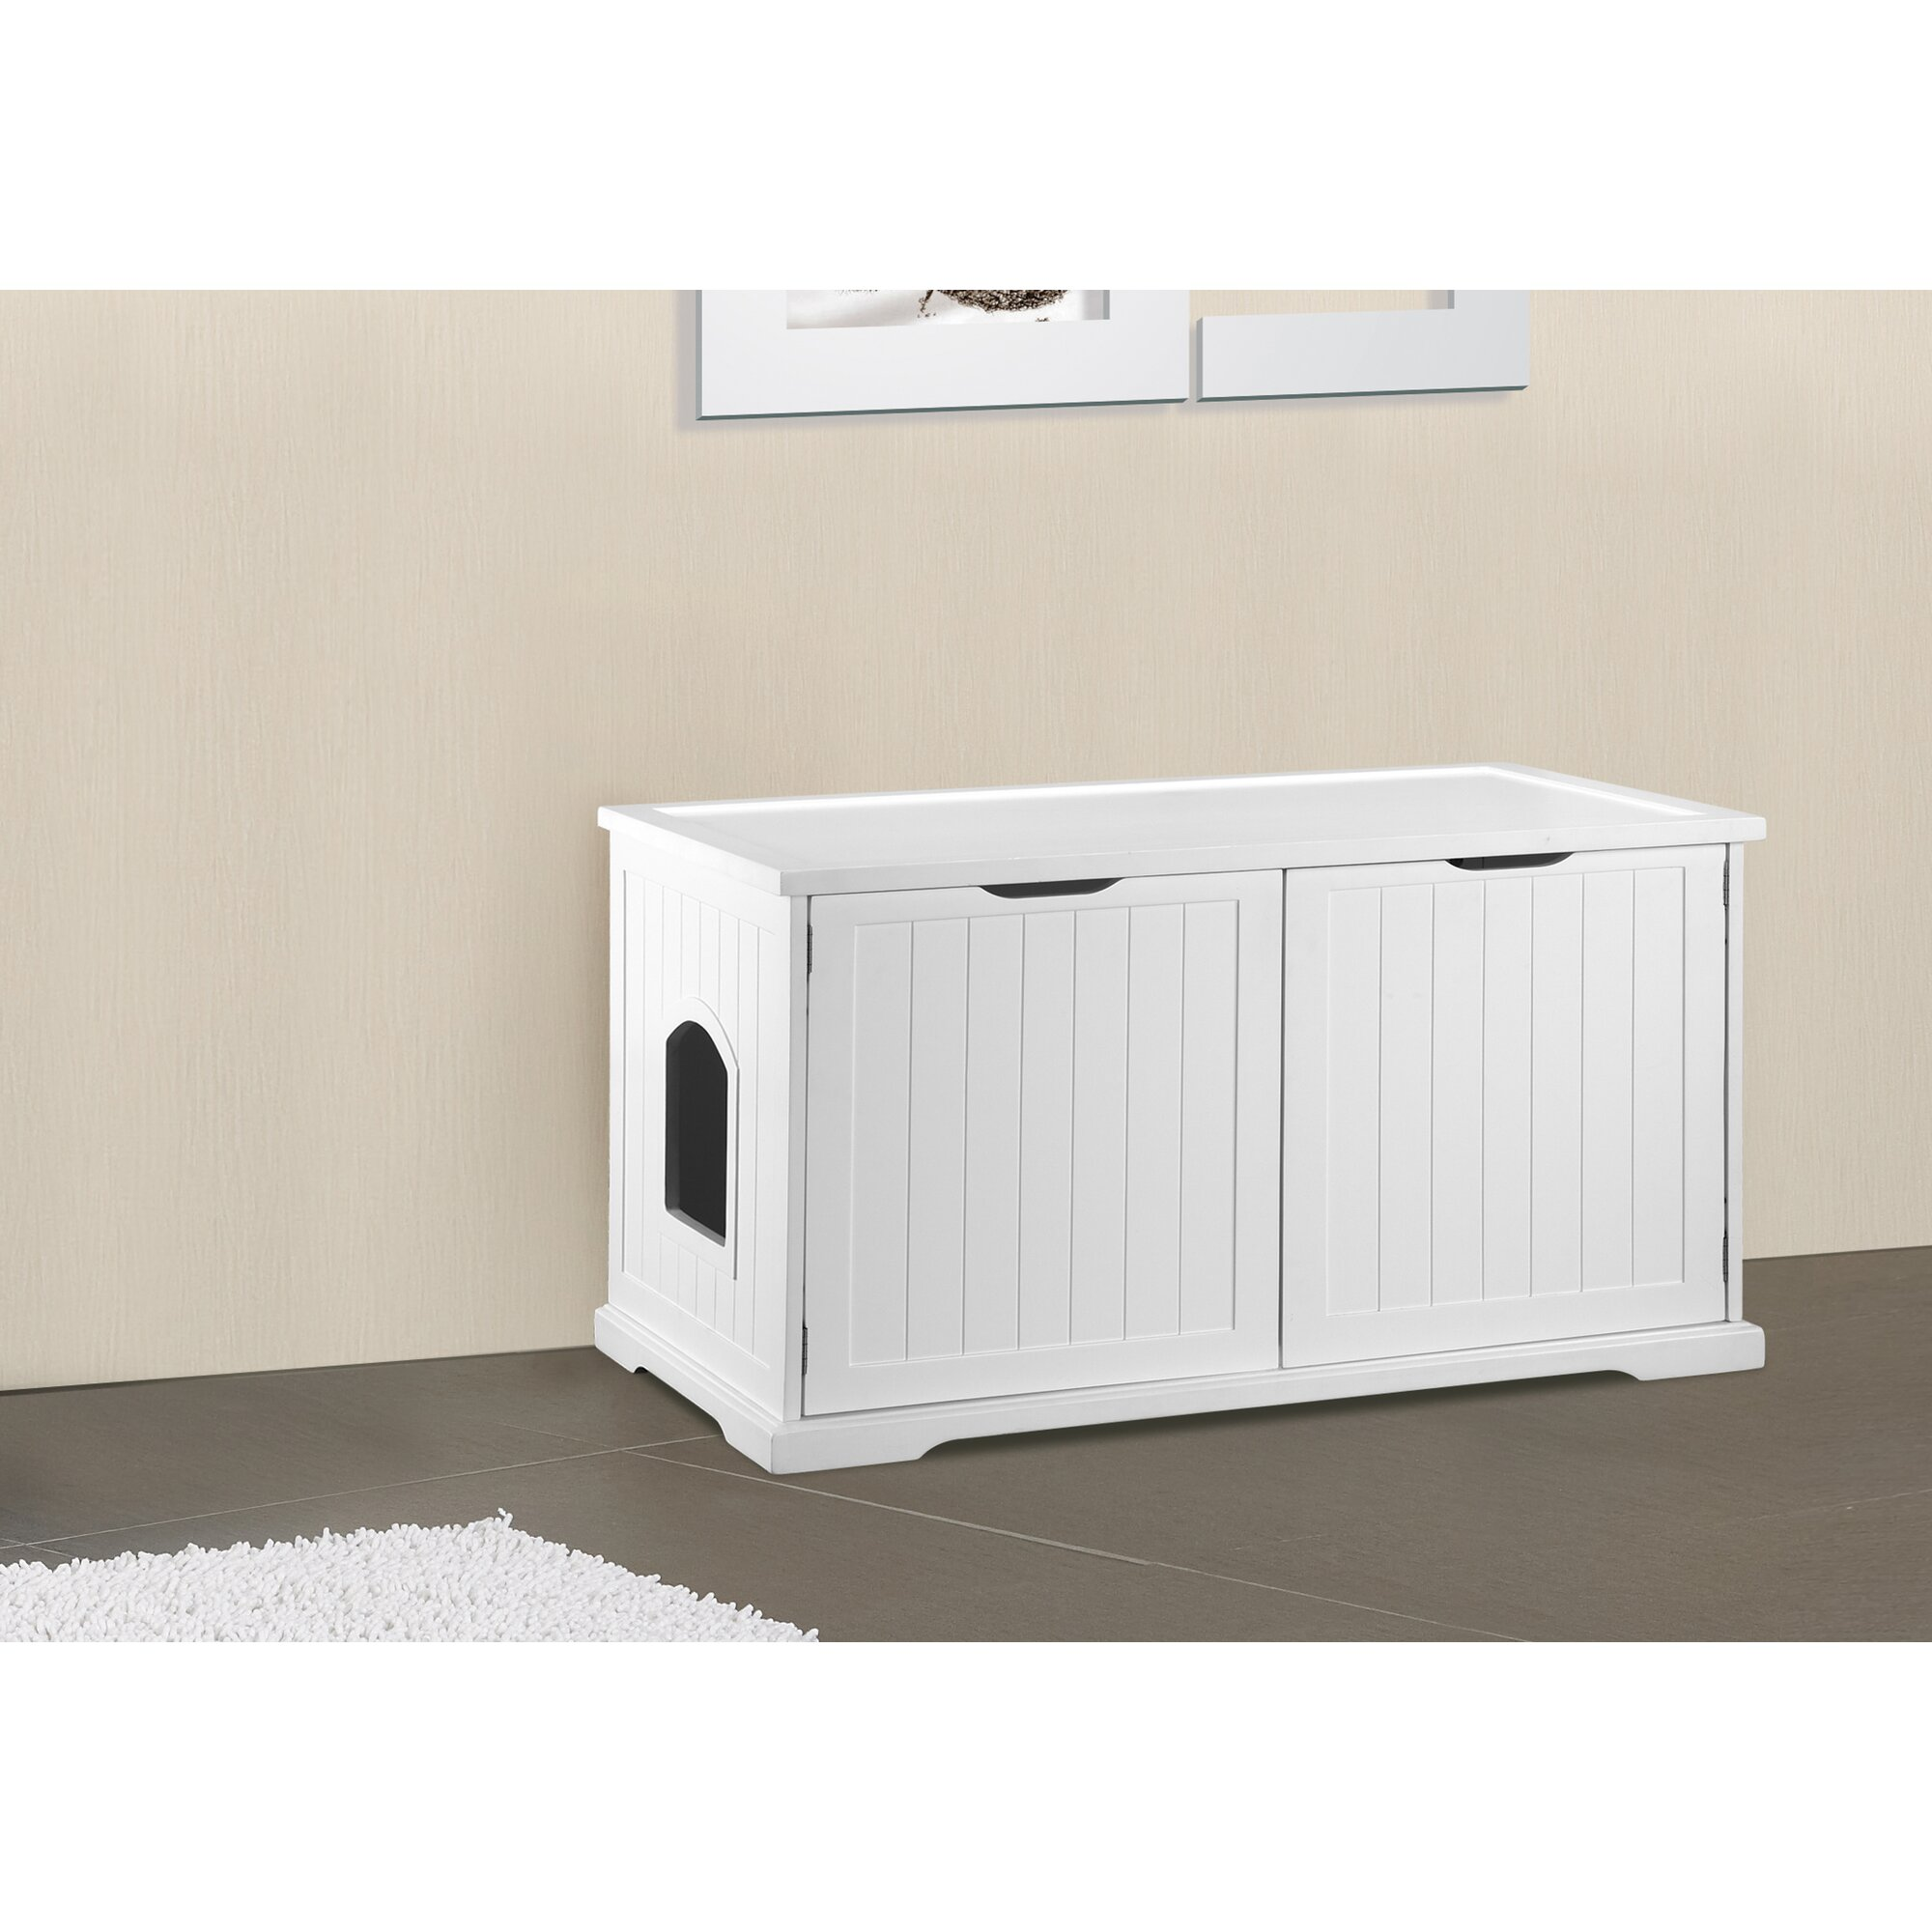 QUICK VIEW  Kitty Litter Box. Litter Boxes   Enclosures